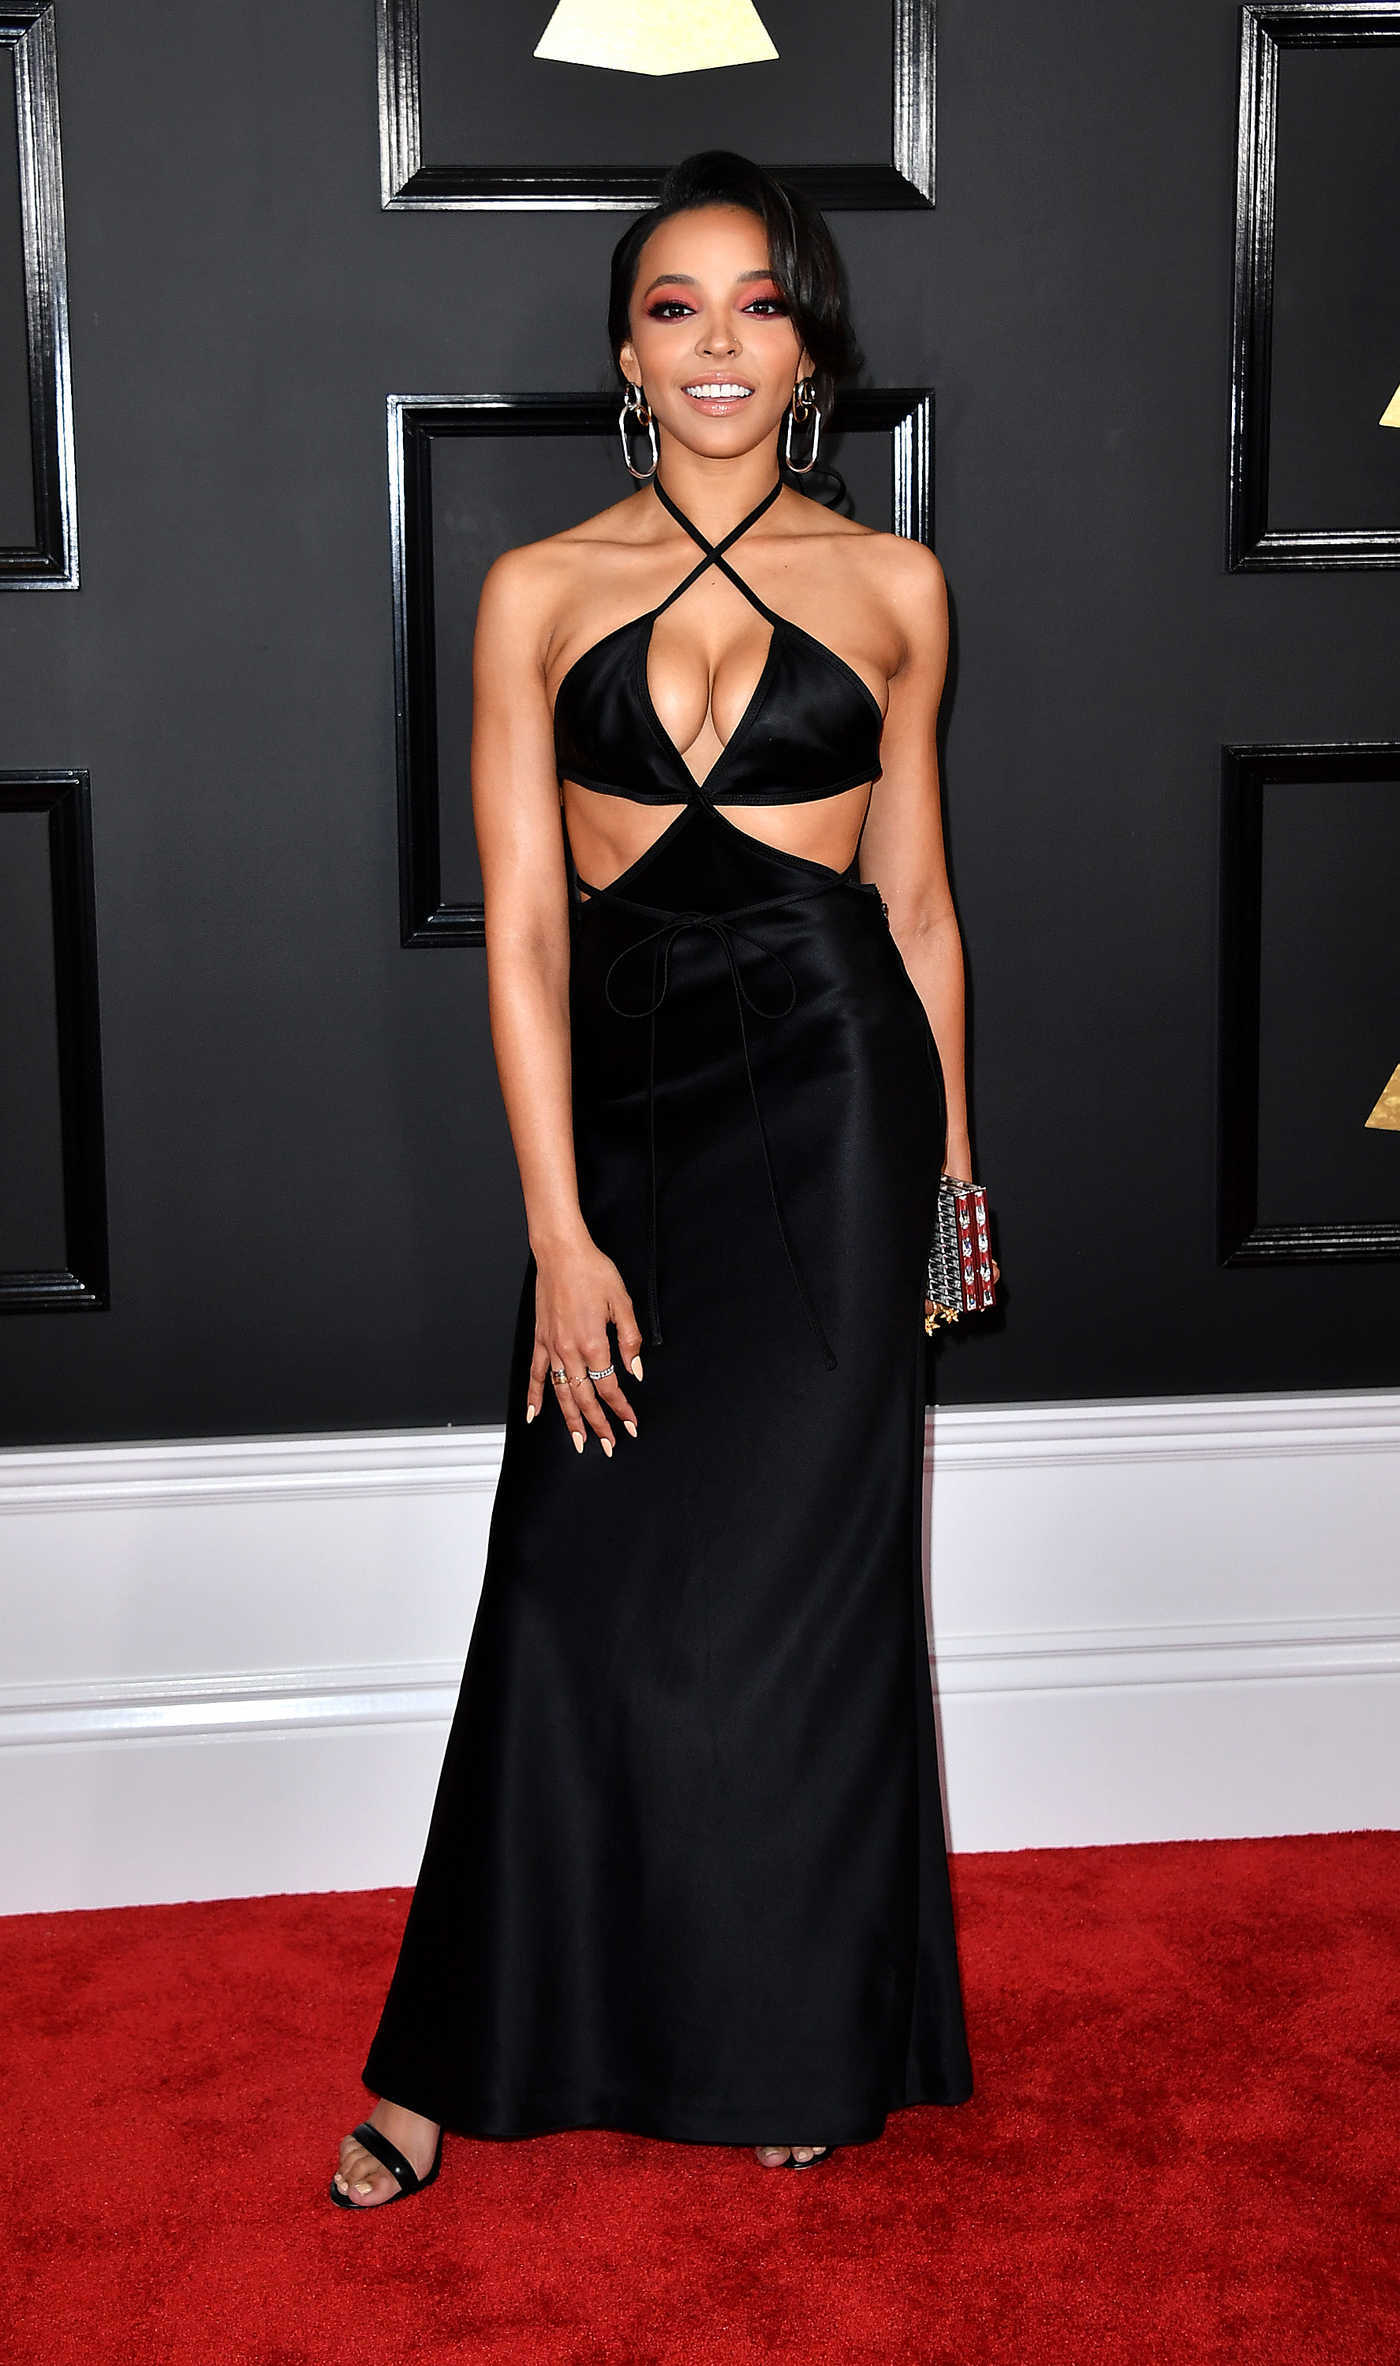 Tinashe at the 59th Grammy Awards in Los Angeles 02/12/2017